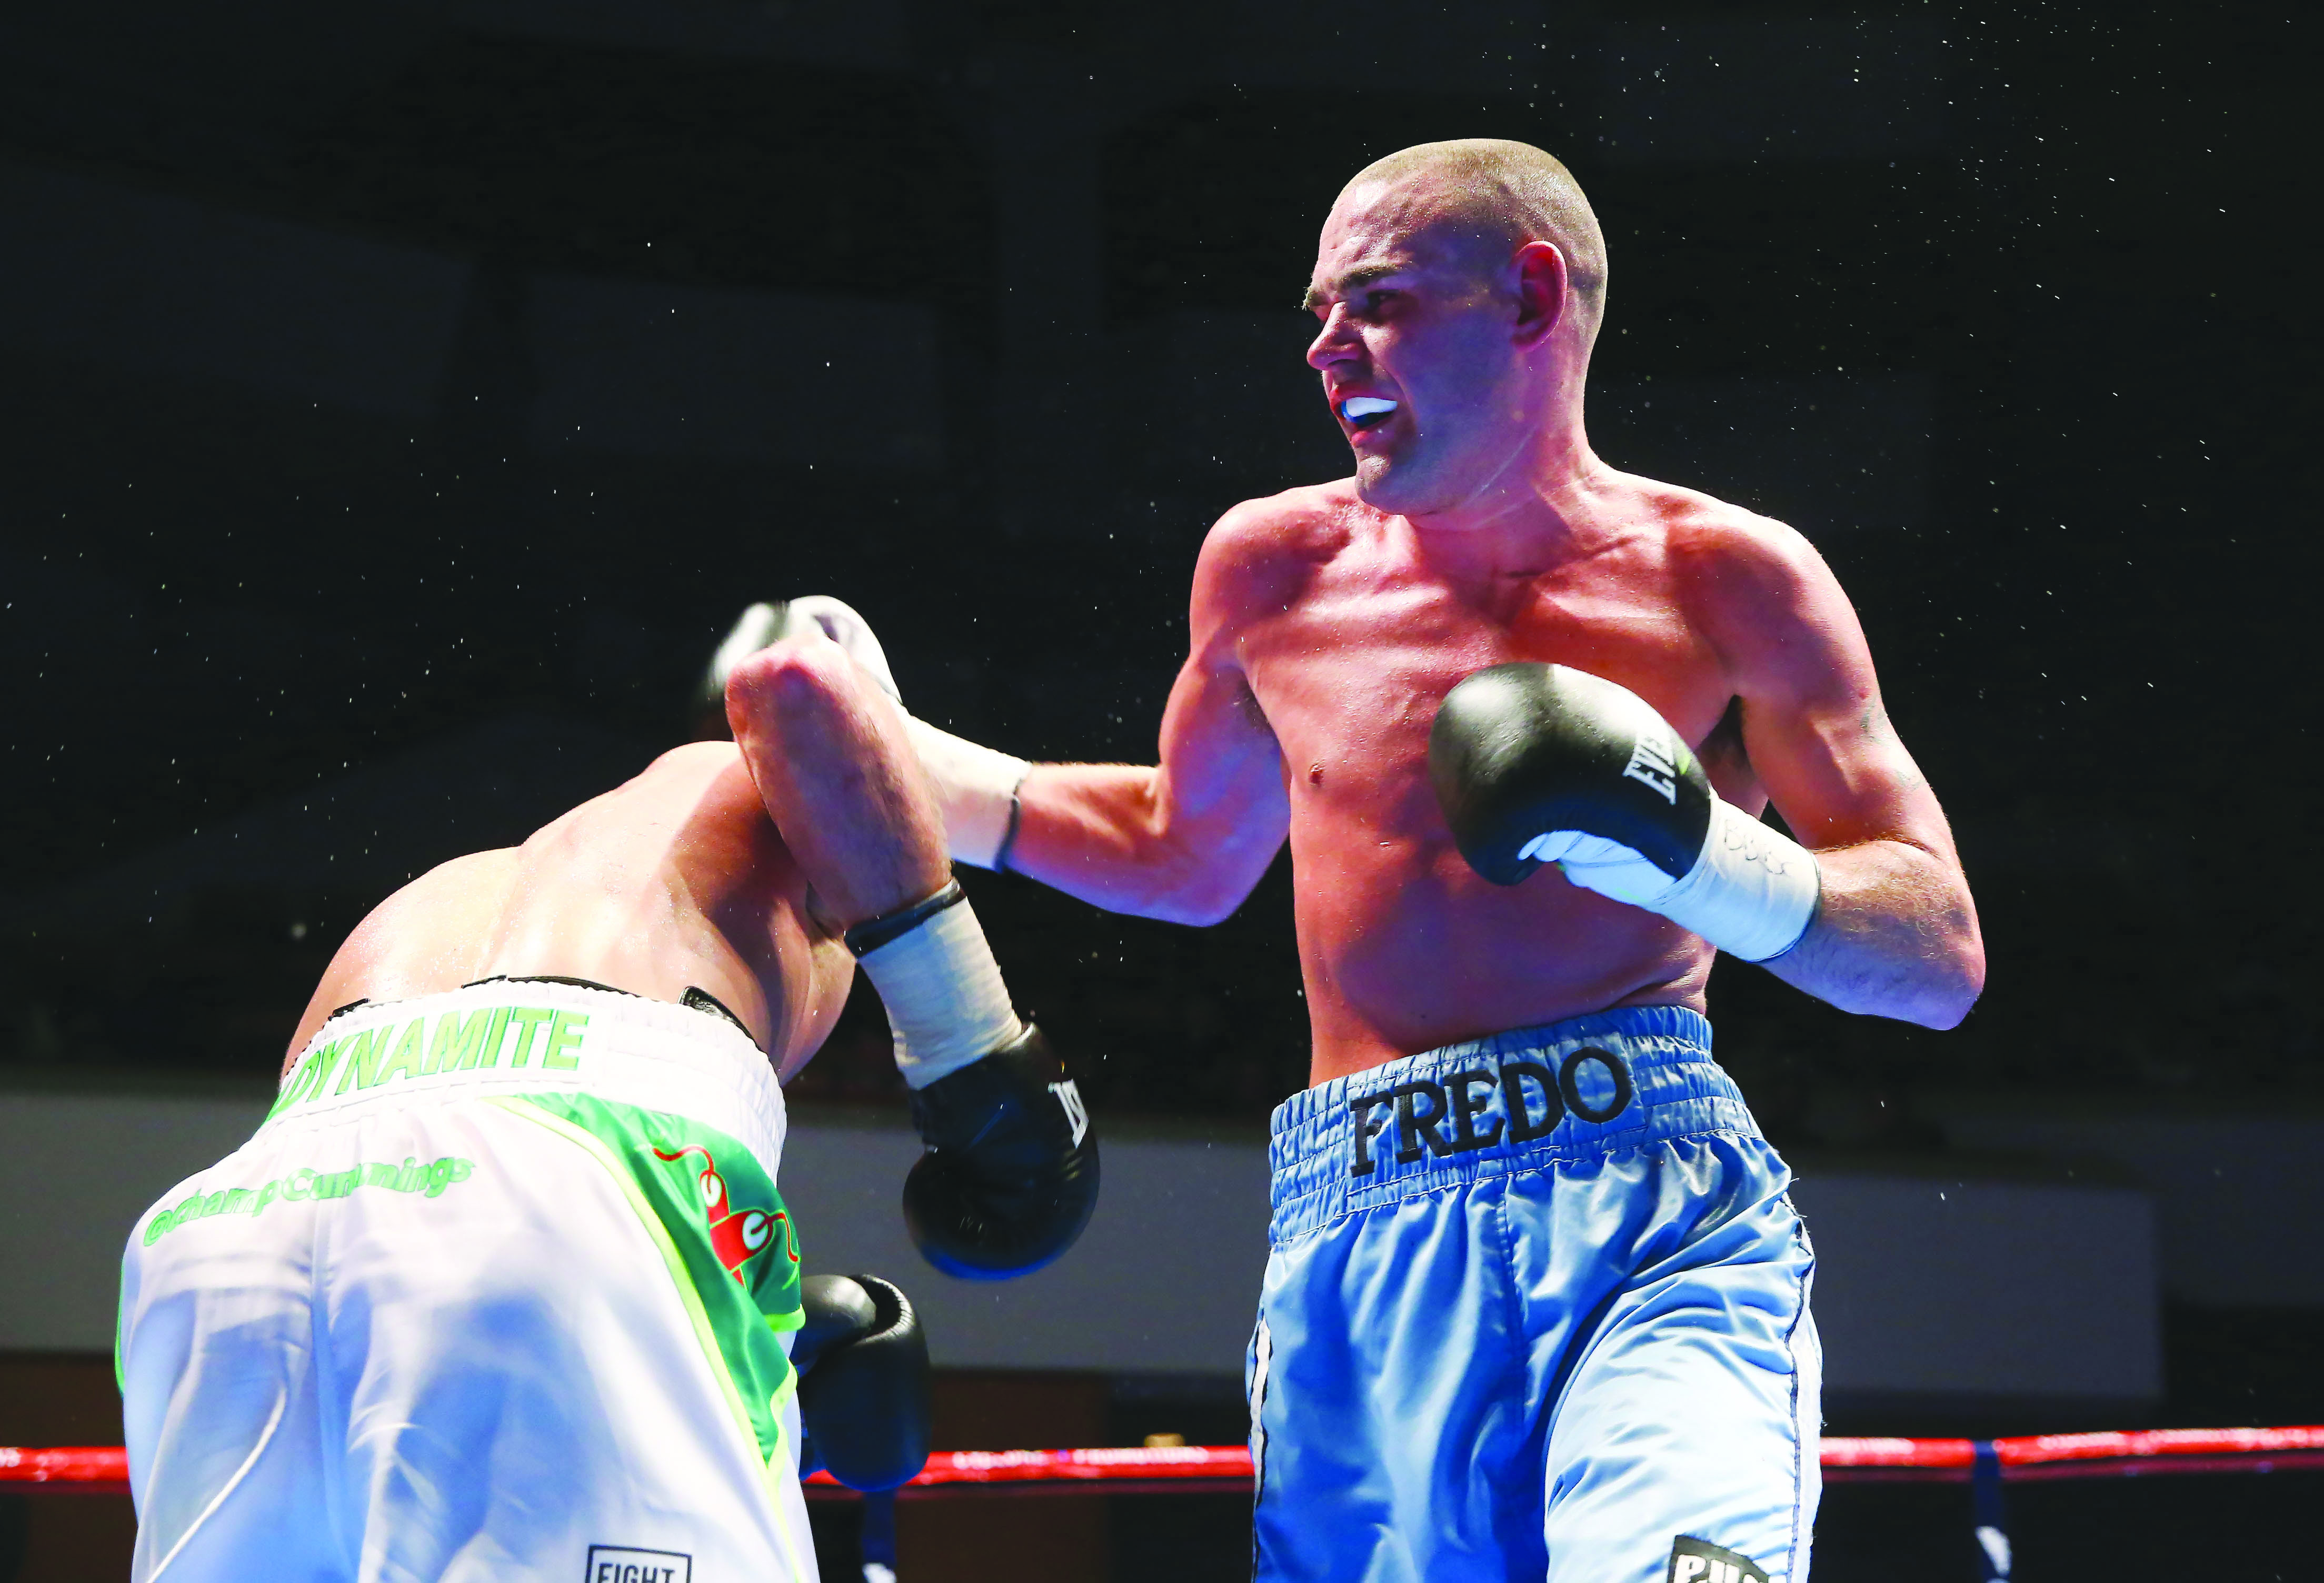 Friday's six-round contest against Laszlo Fazekas is Alfredo Meli's first fight back in Belfast since his Celtic title draw with Conrad Cummings back in November 2015